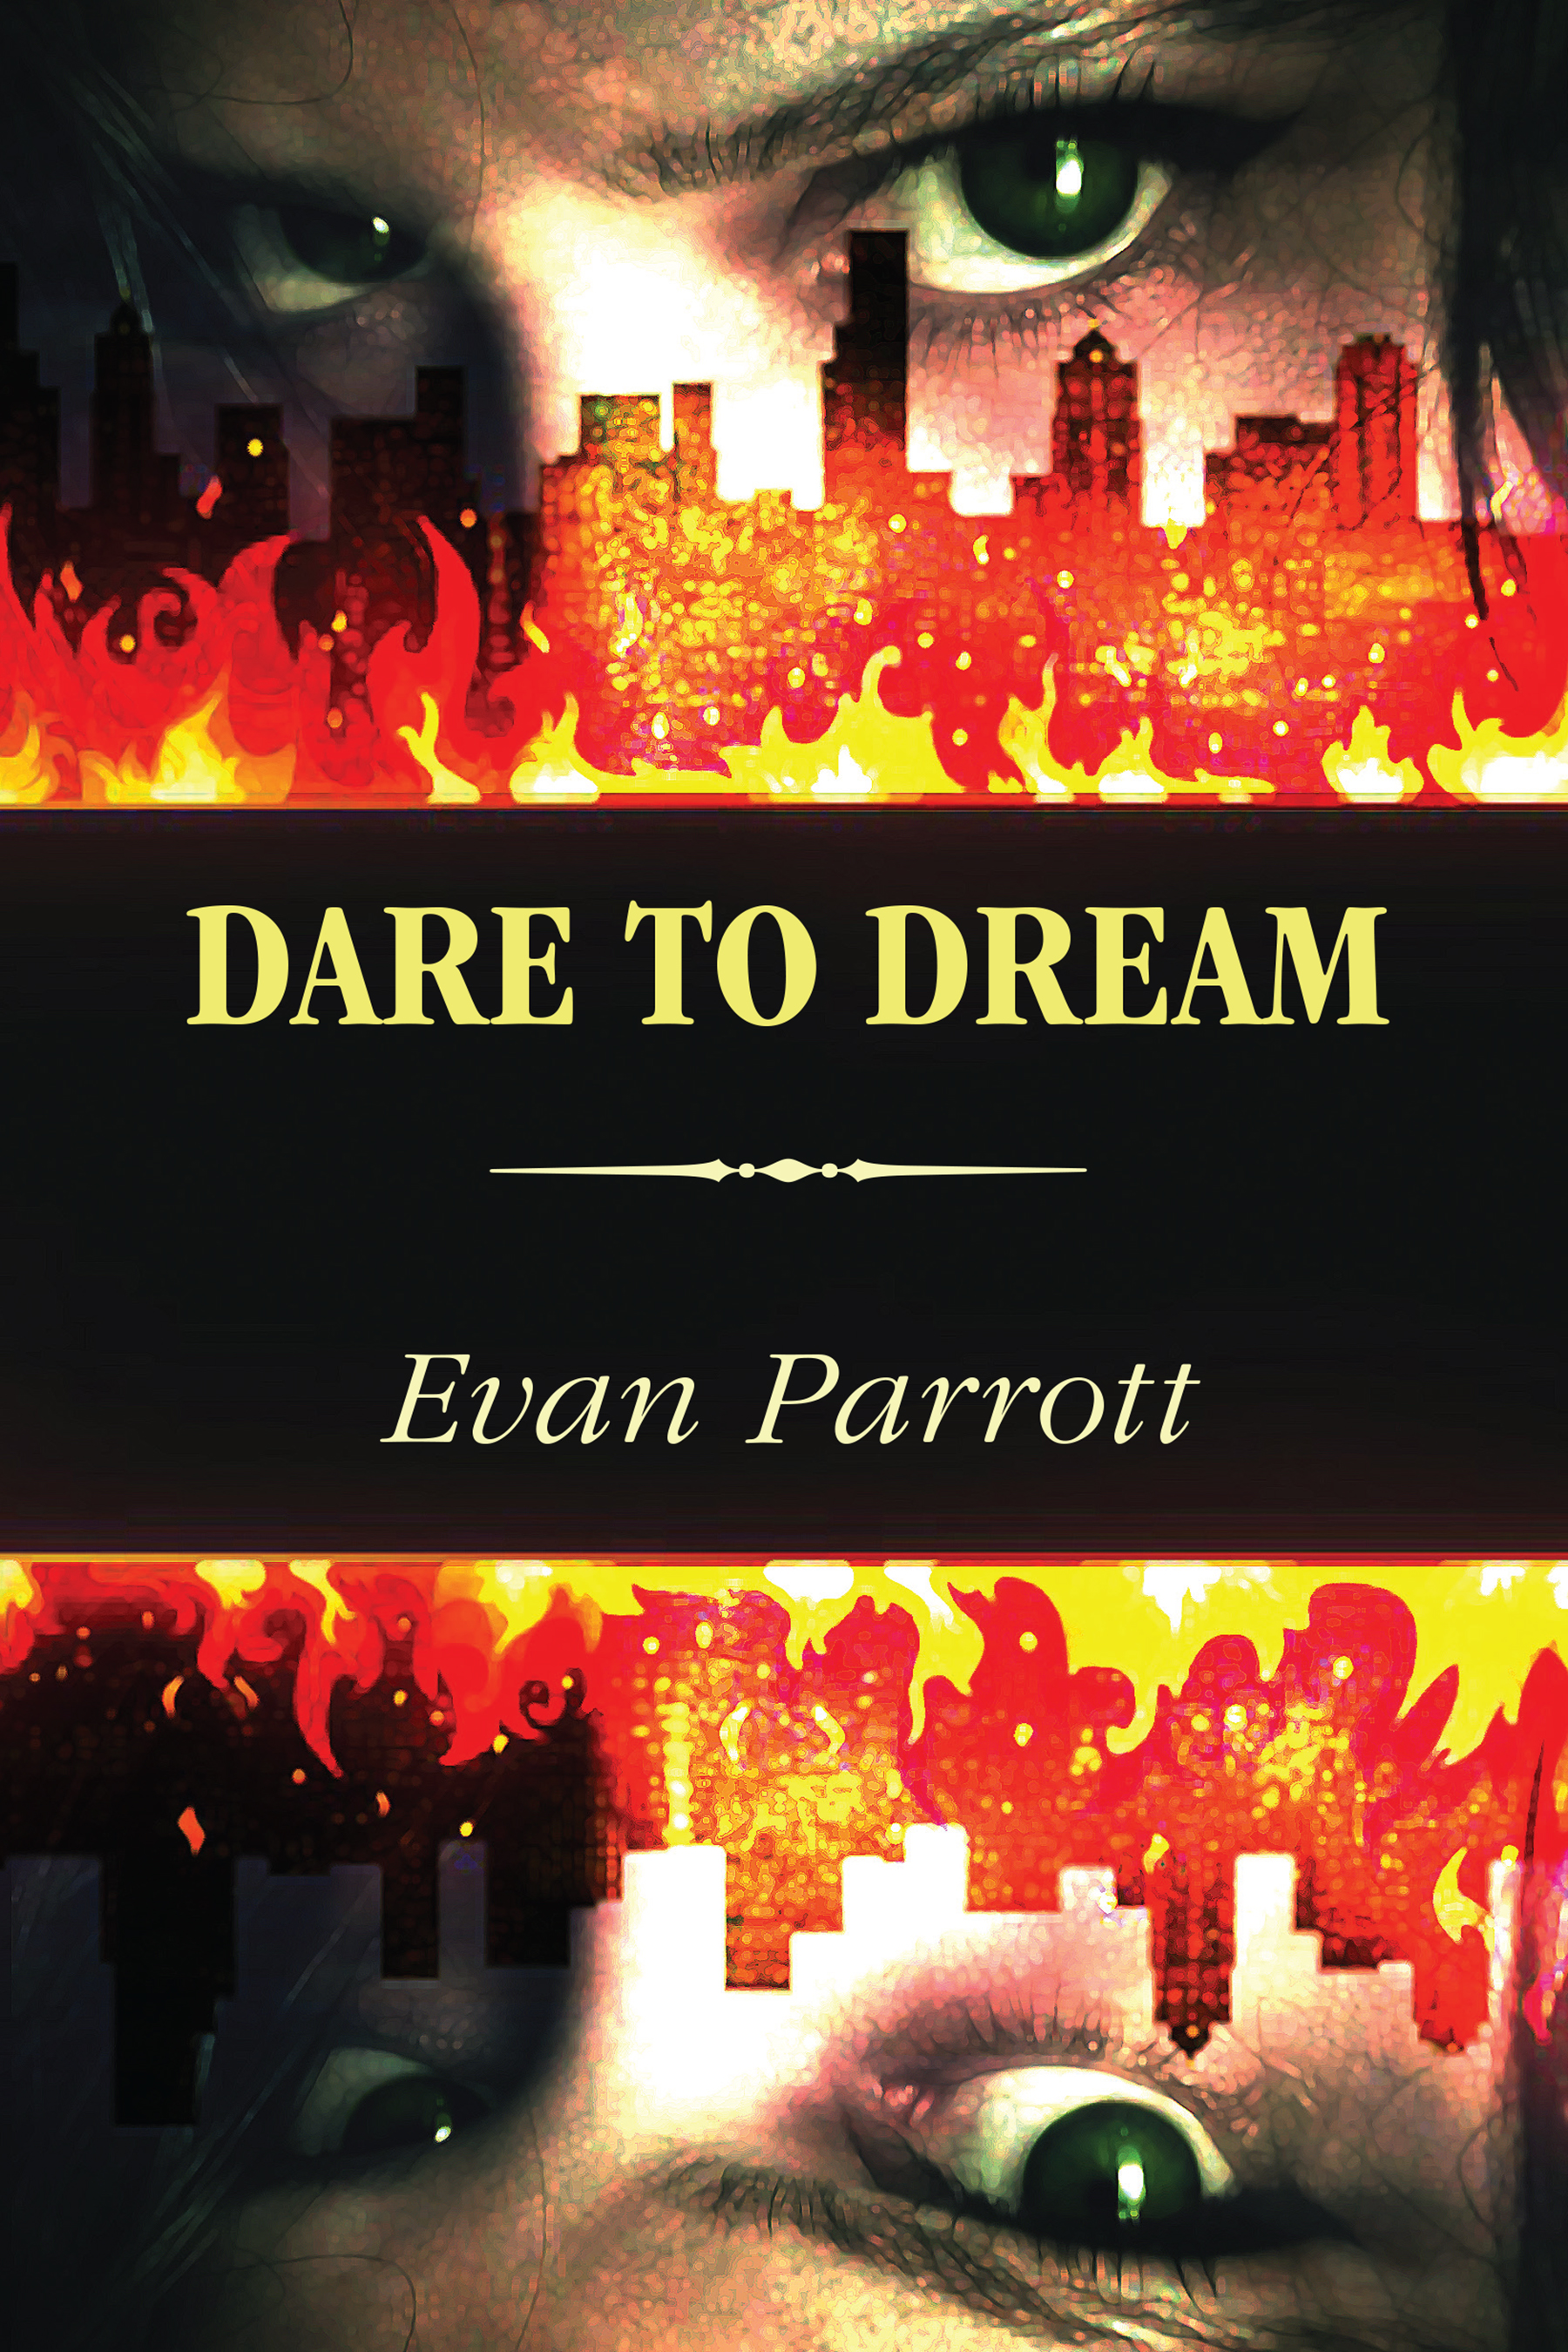 Dare to Dream by Evan Parrott